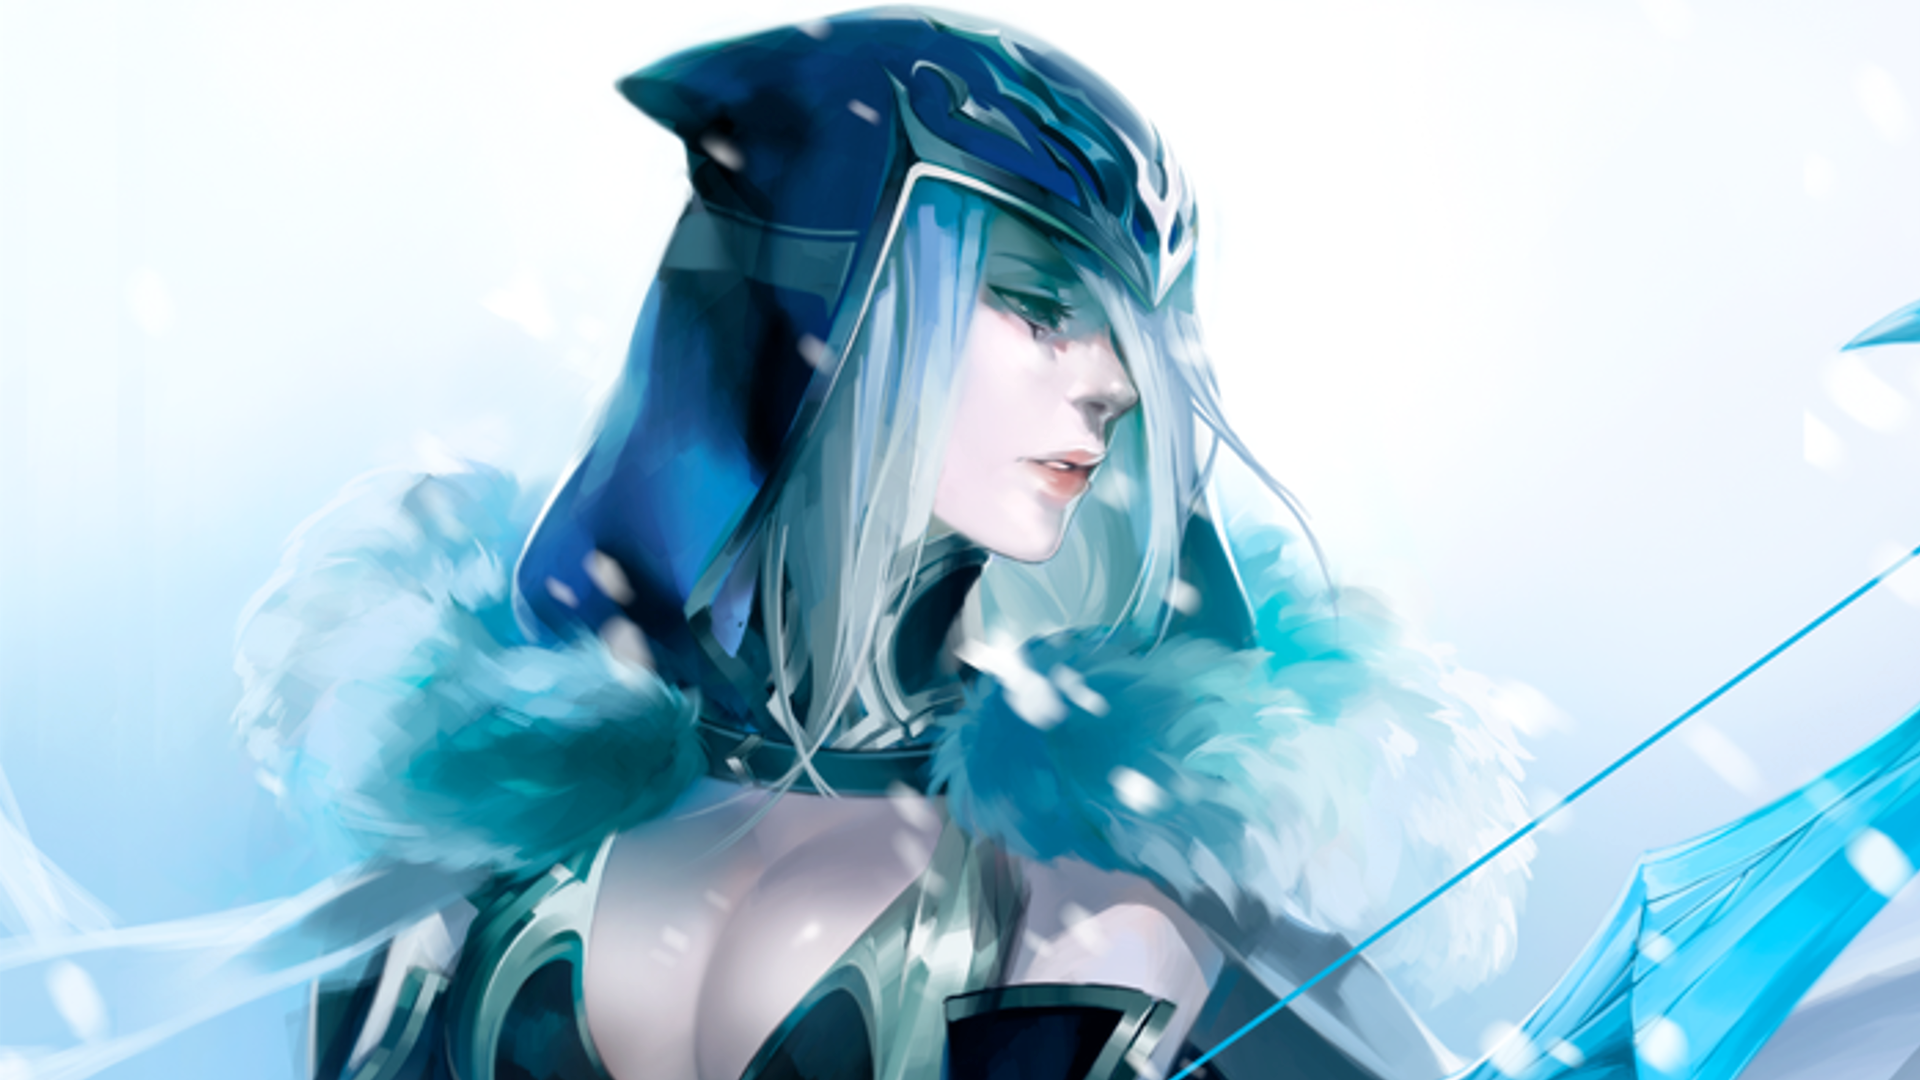 Wallpaper illustration cosplay anime snow League of Legends